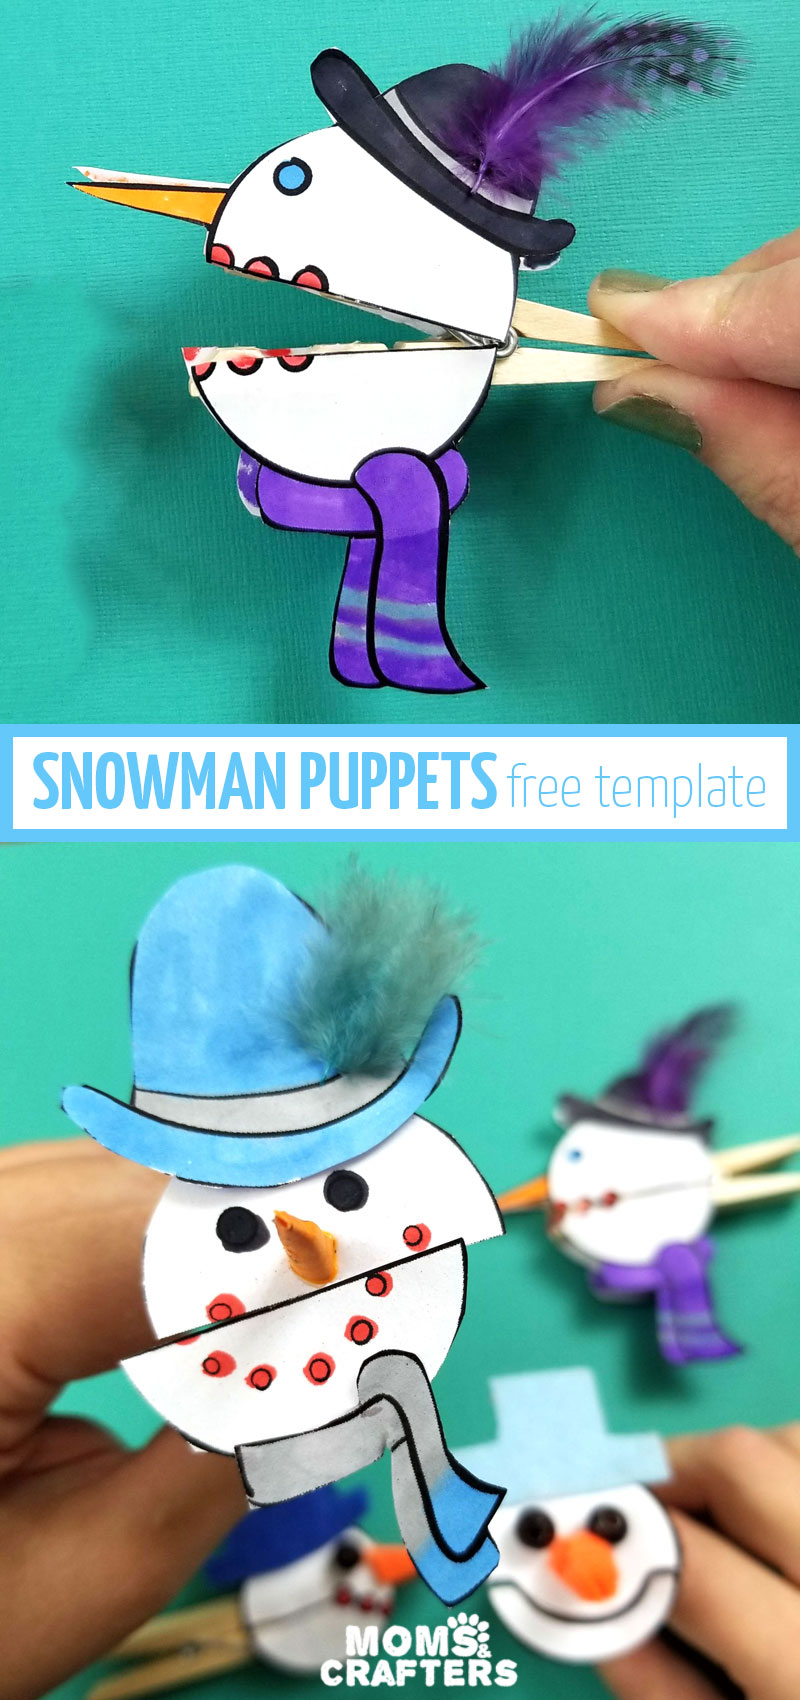 Click for the free template to make these cool snowman puppets with clothespins! These fun winter crafts for kids help practice fine motor skills, communication, and more, as well as teaching kids about winter.